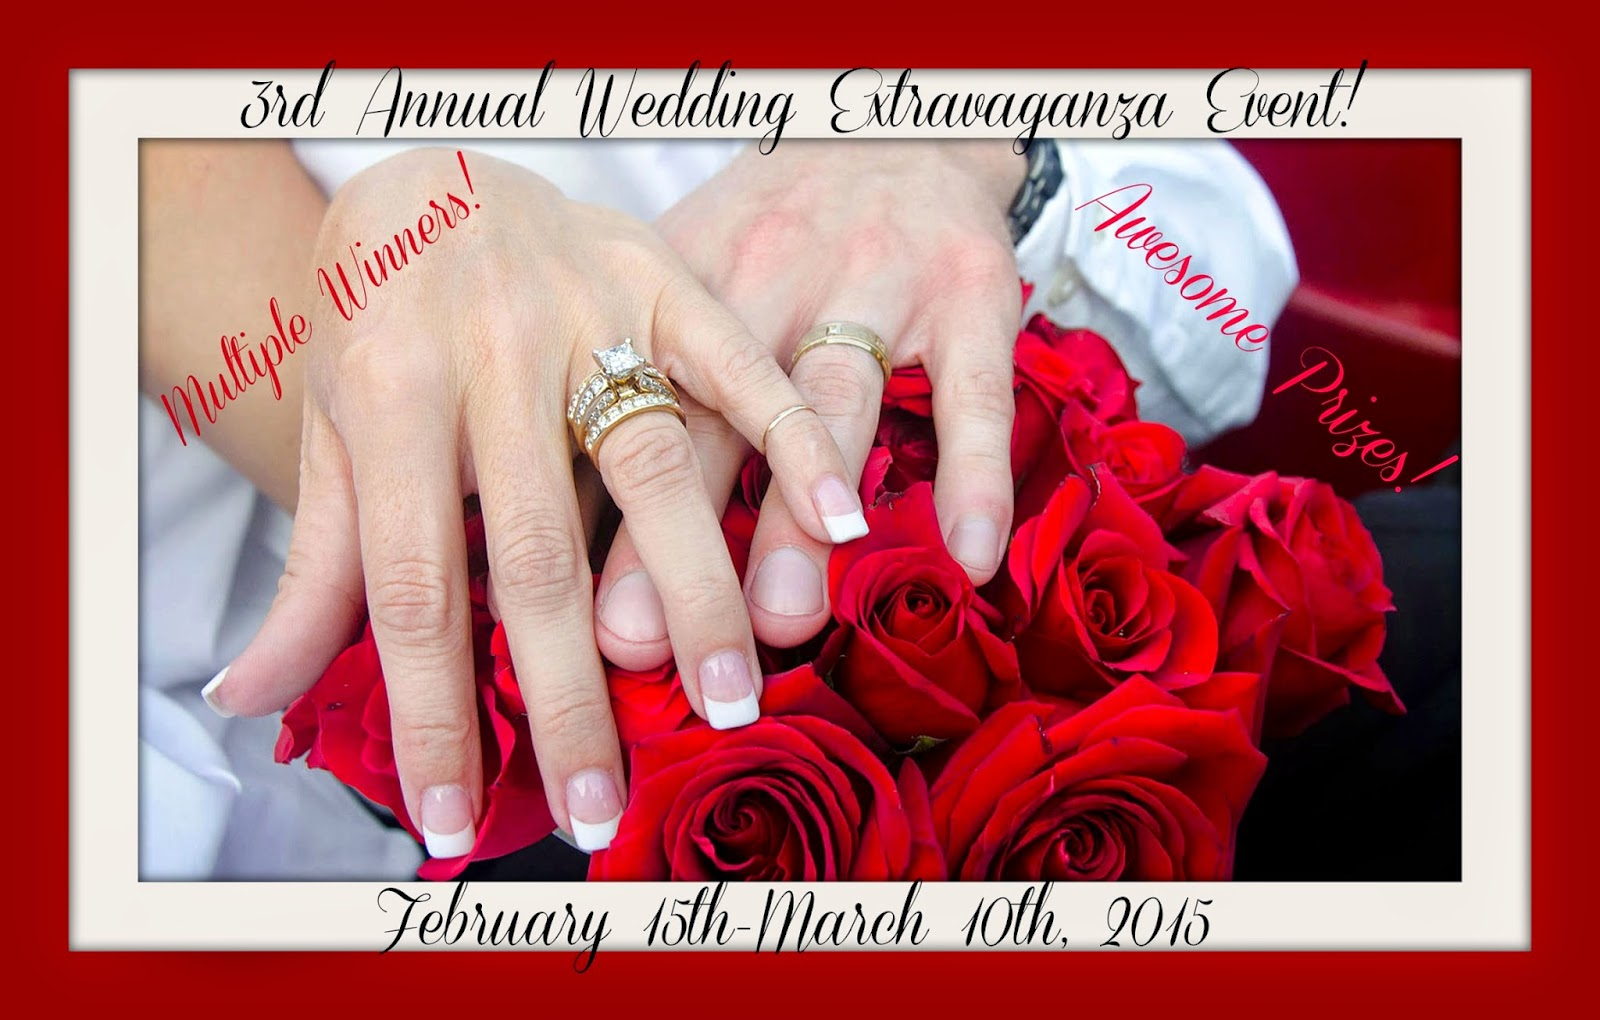 Enter the 3rd Annual Wedding Extravaganza Giveaway Event. Ends 3/10.